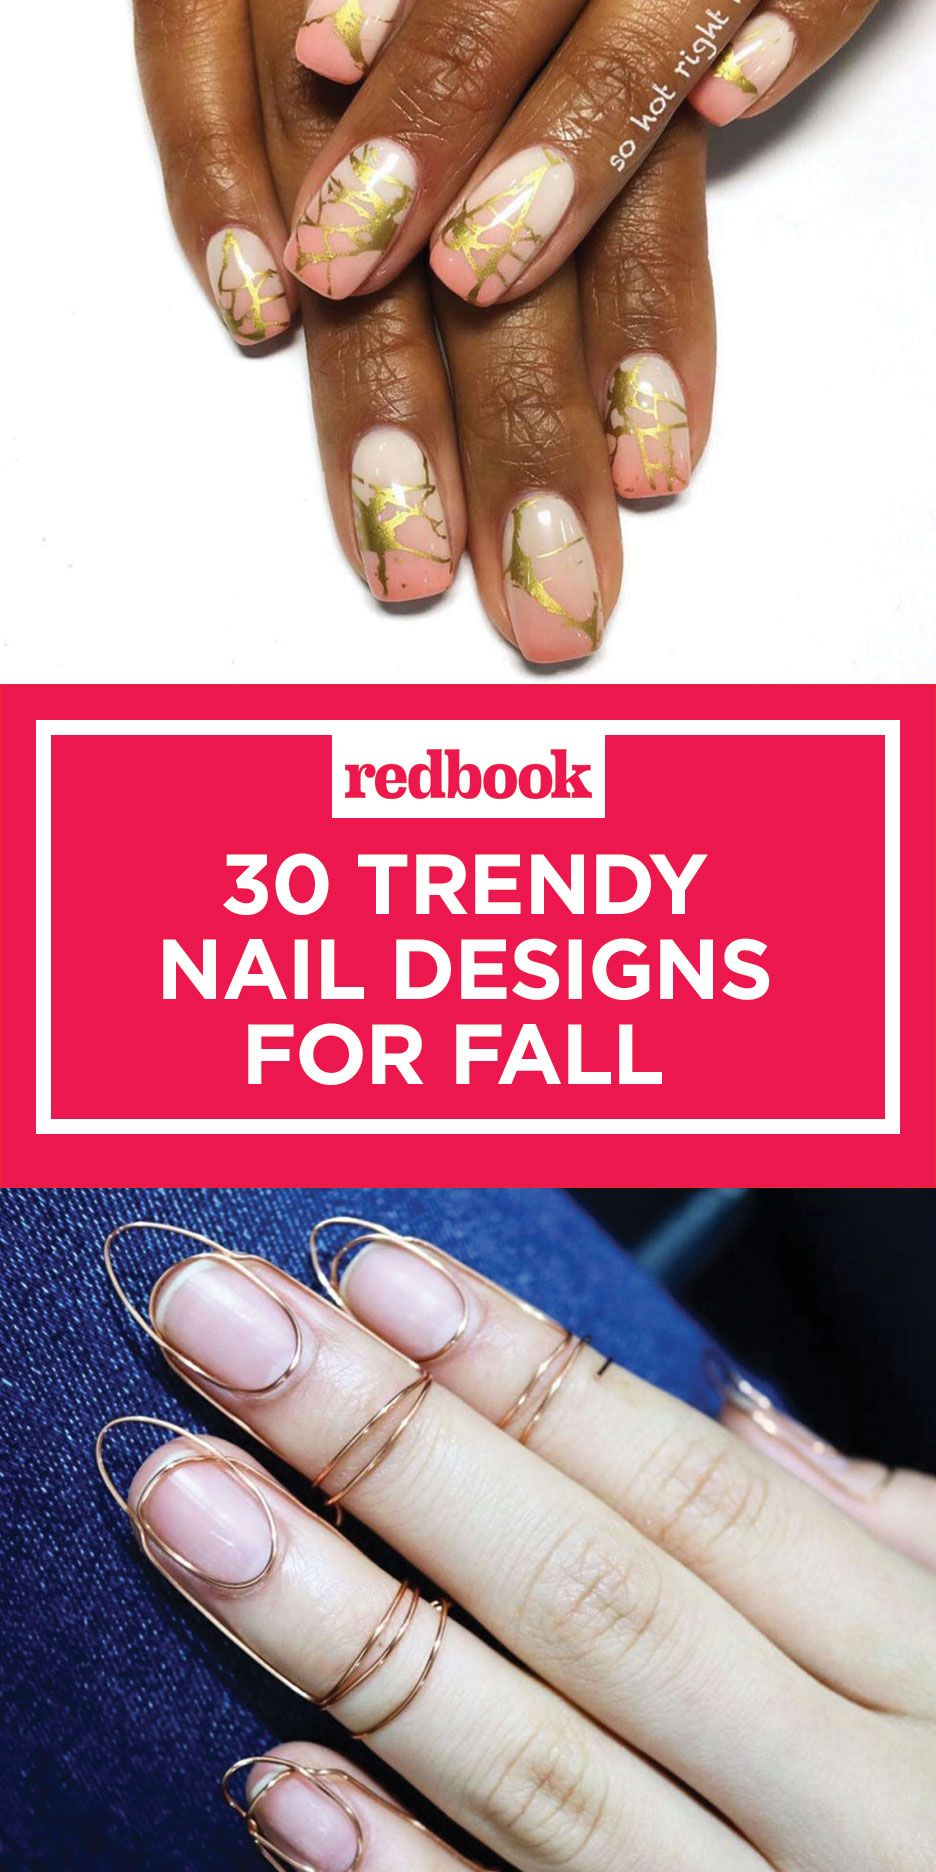 34 Fall Nail Designs for 2017 - Cute Autumn Manicure Ideas